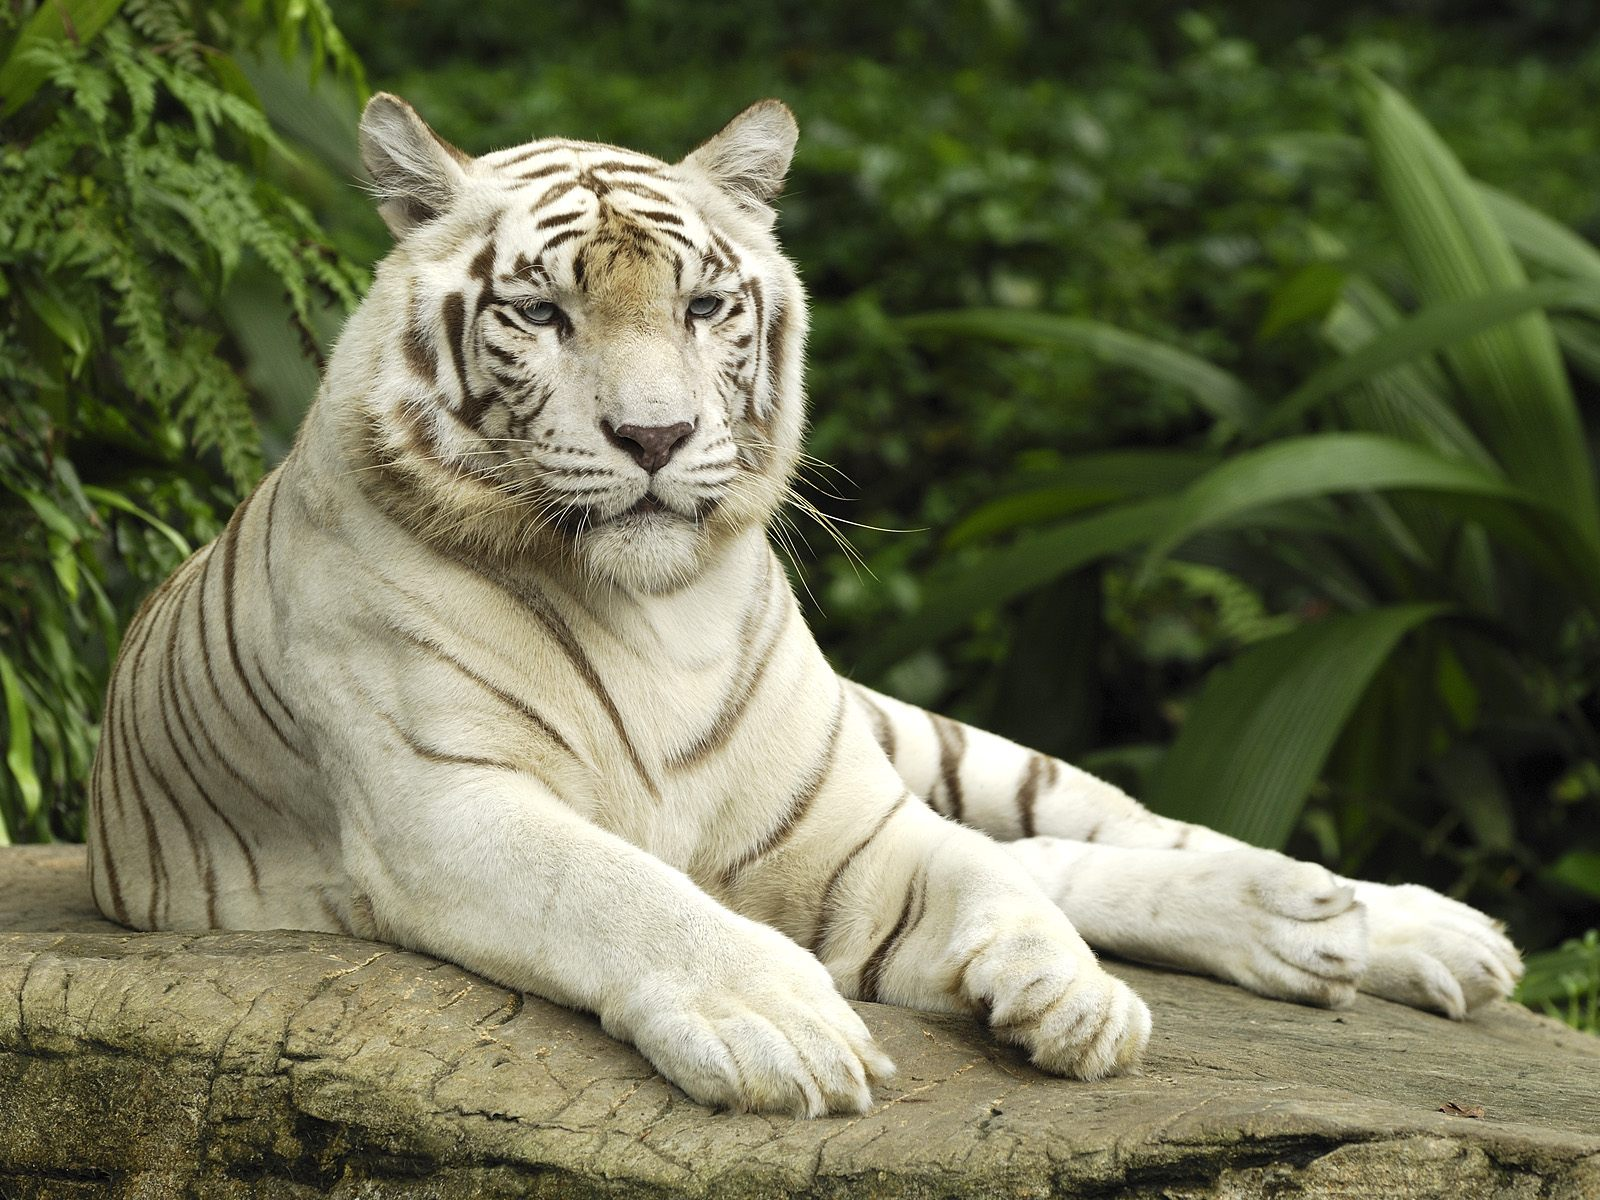 Hd Tiger Pictures Tiger Wallpapers: HD Wallpapers: White Tiger HD Wallpaper 1080p